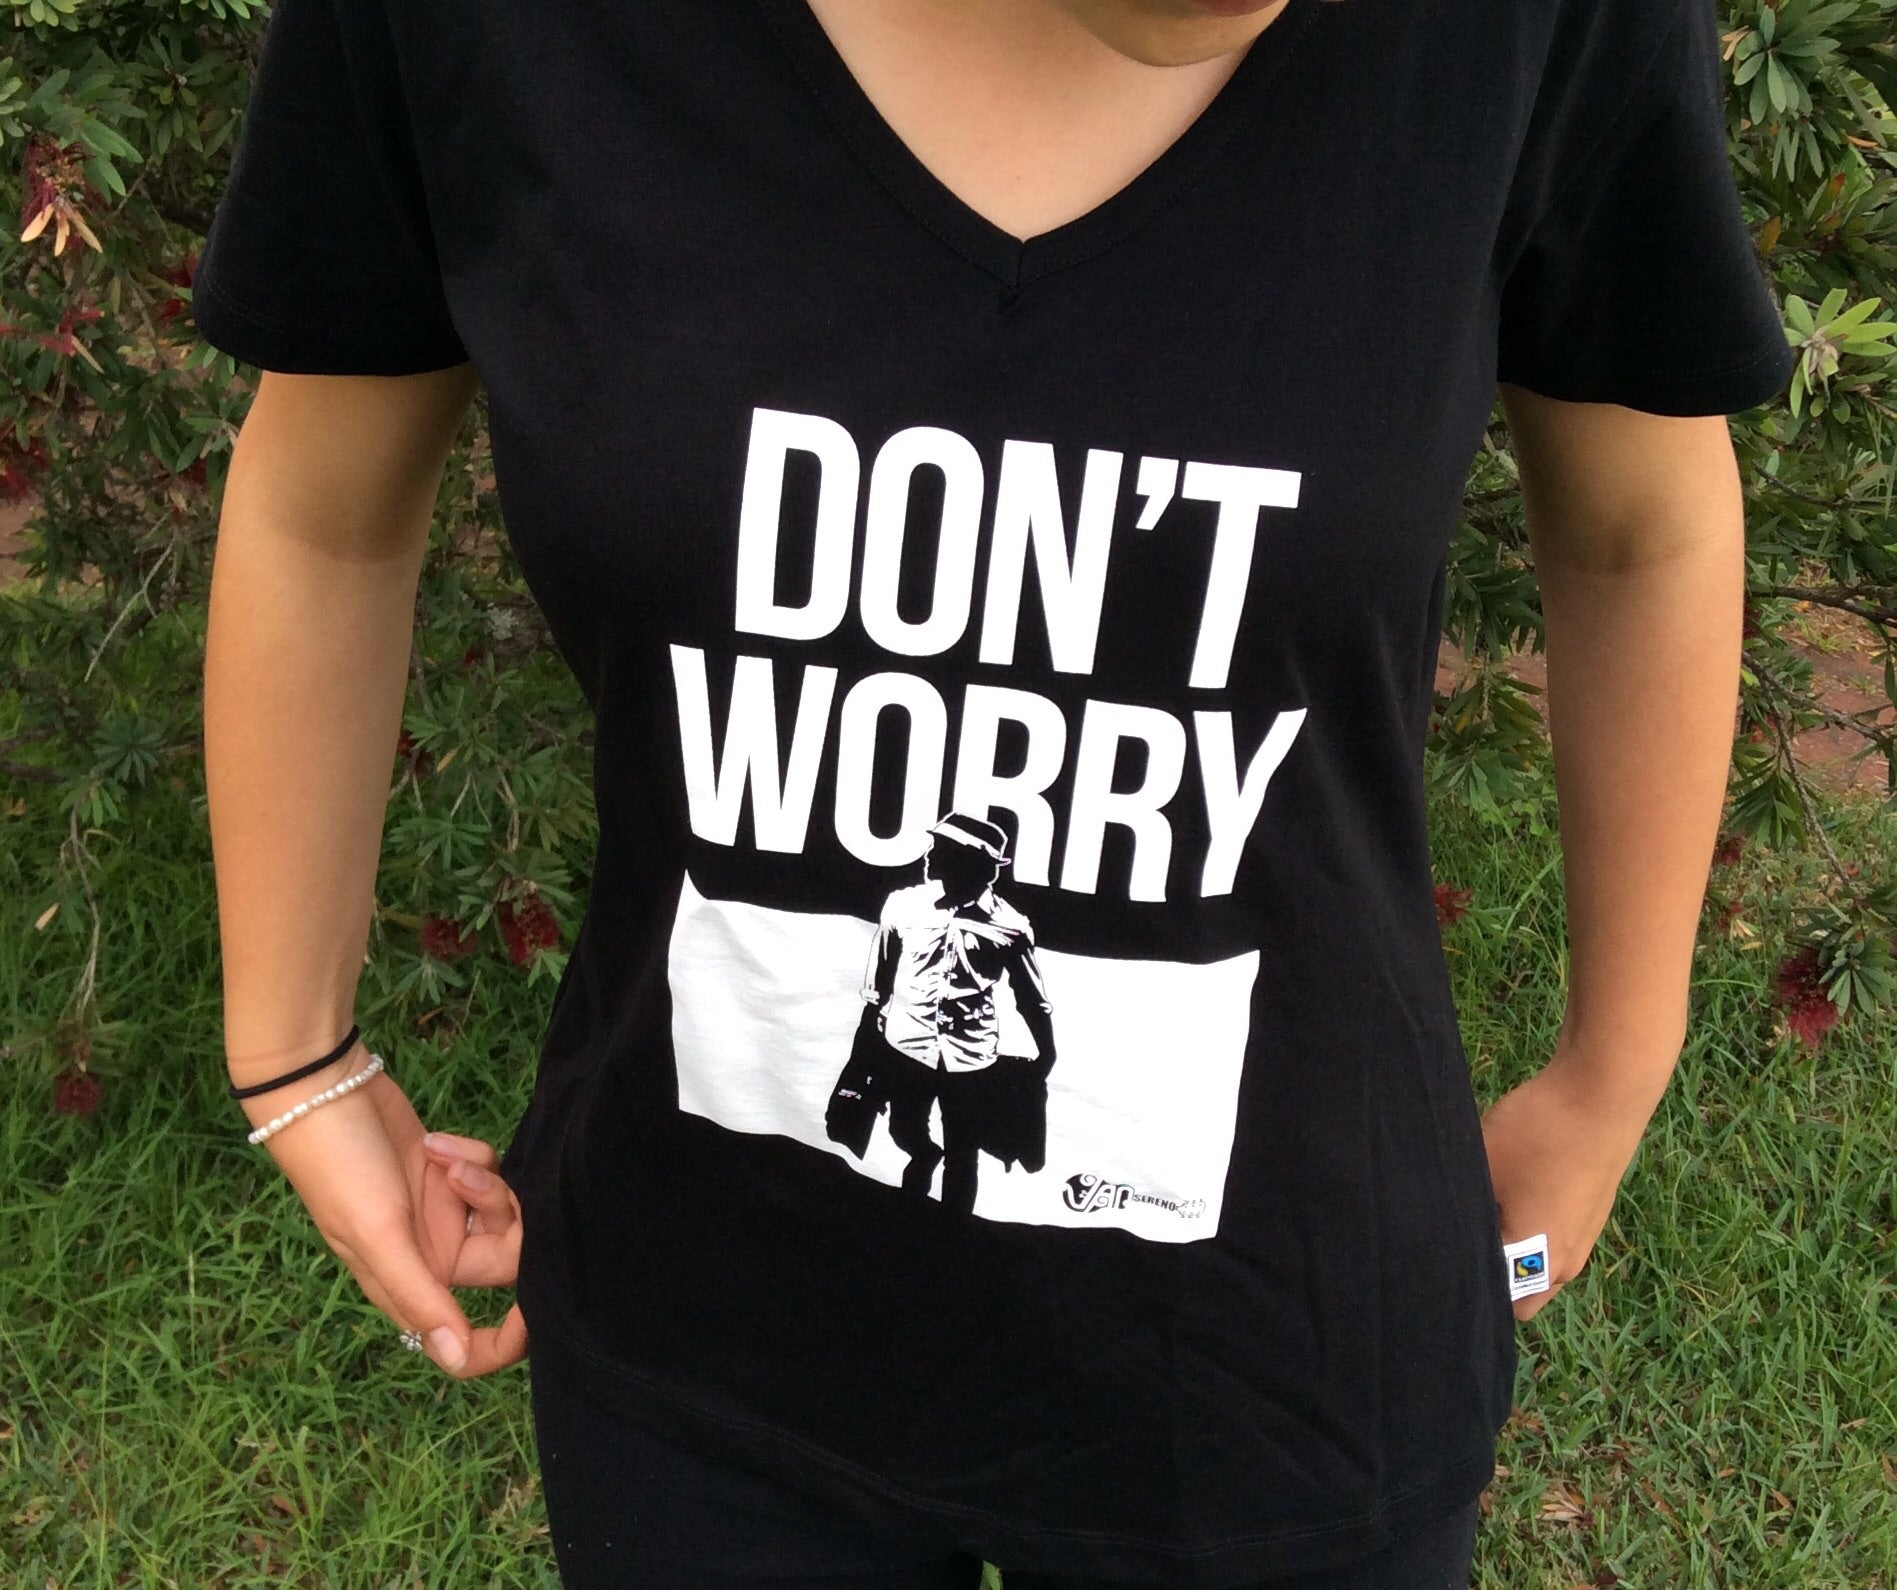 Fair Trade Ethical Cotton T-Shirt Don't Worry Design